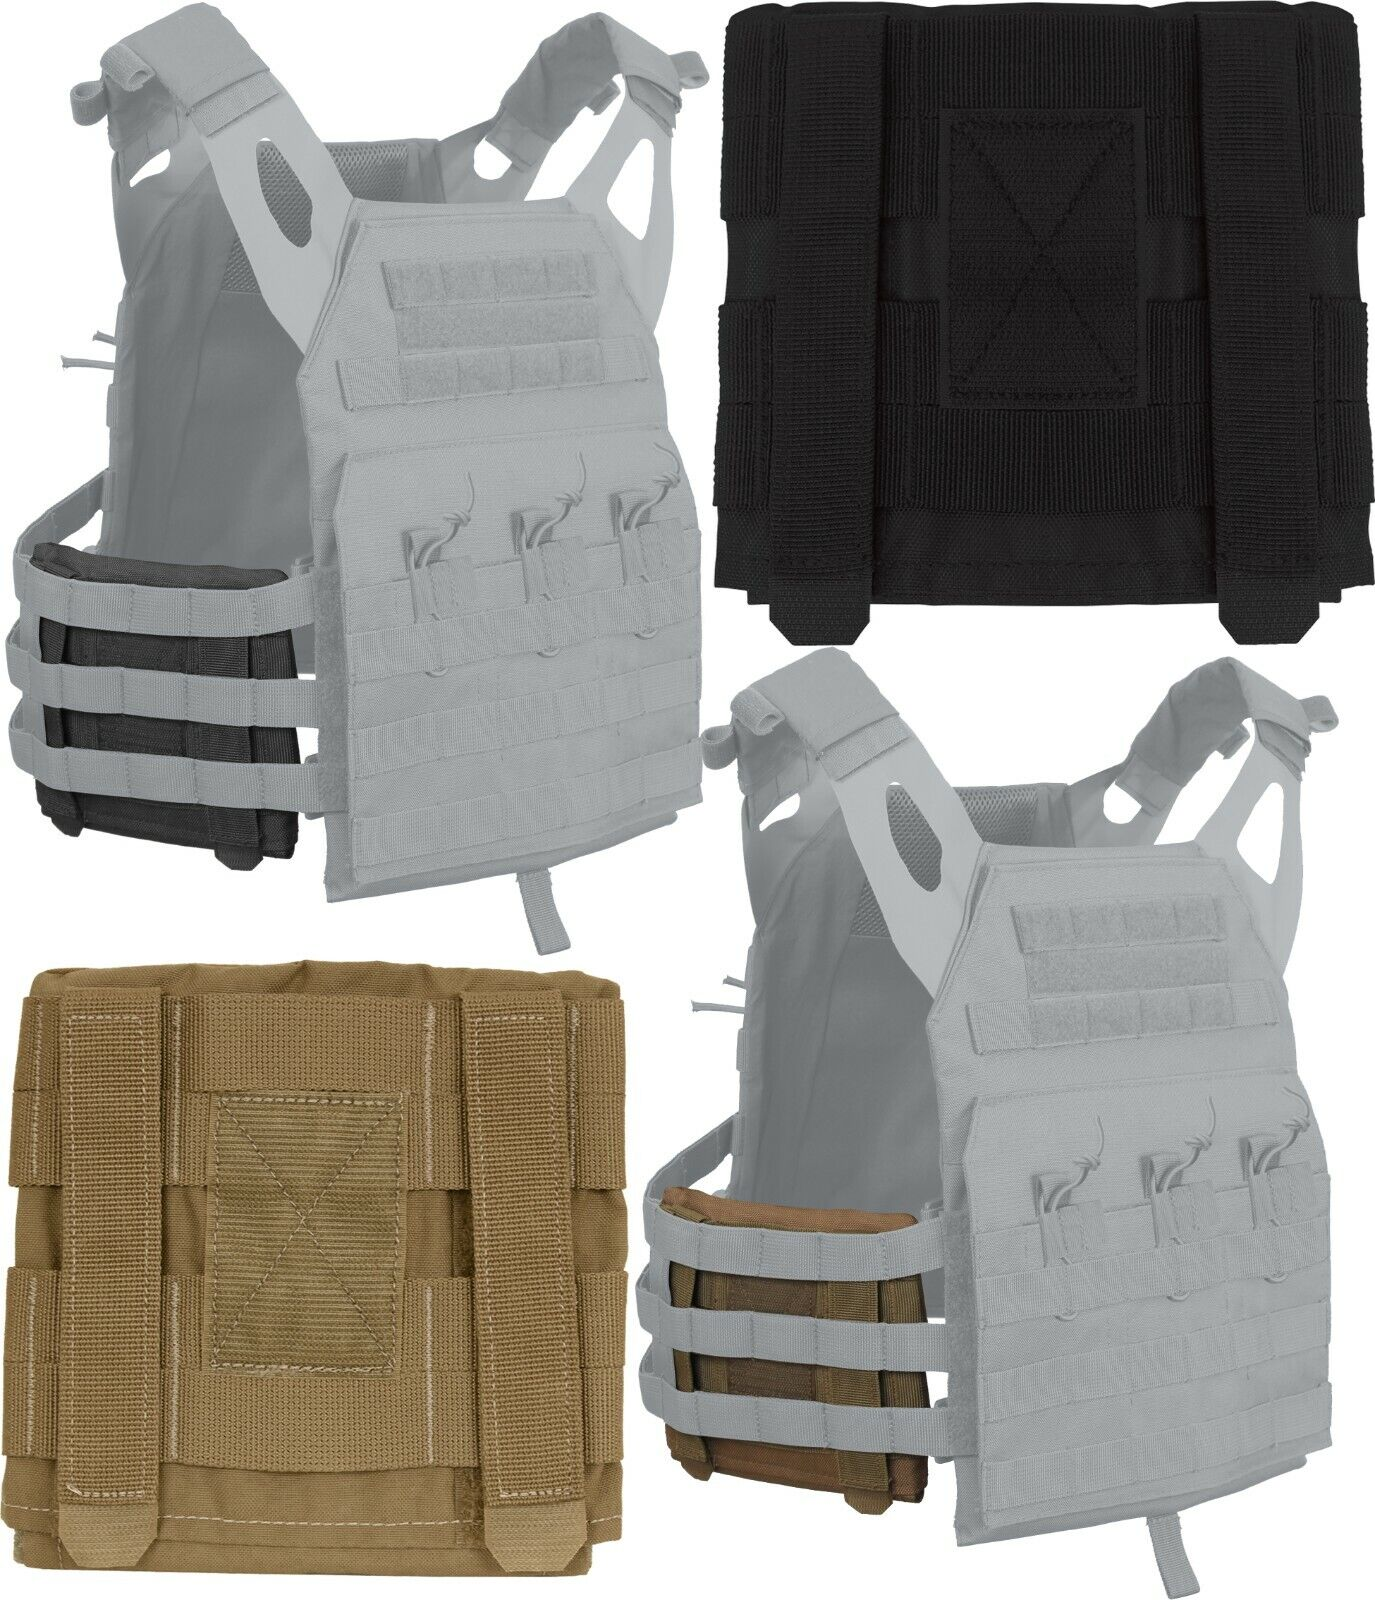 Side Armor Pouch Set for Tactical Lightweight Armor Plate Carrier Vest LACV Hunting